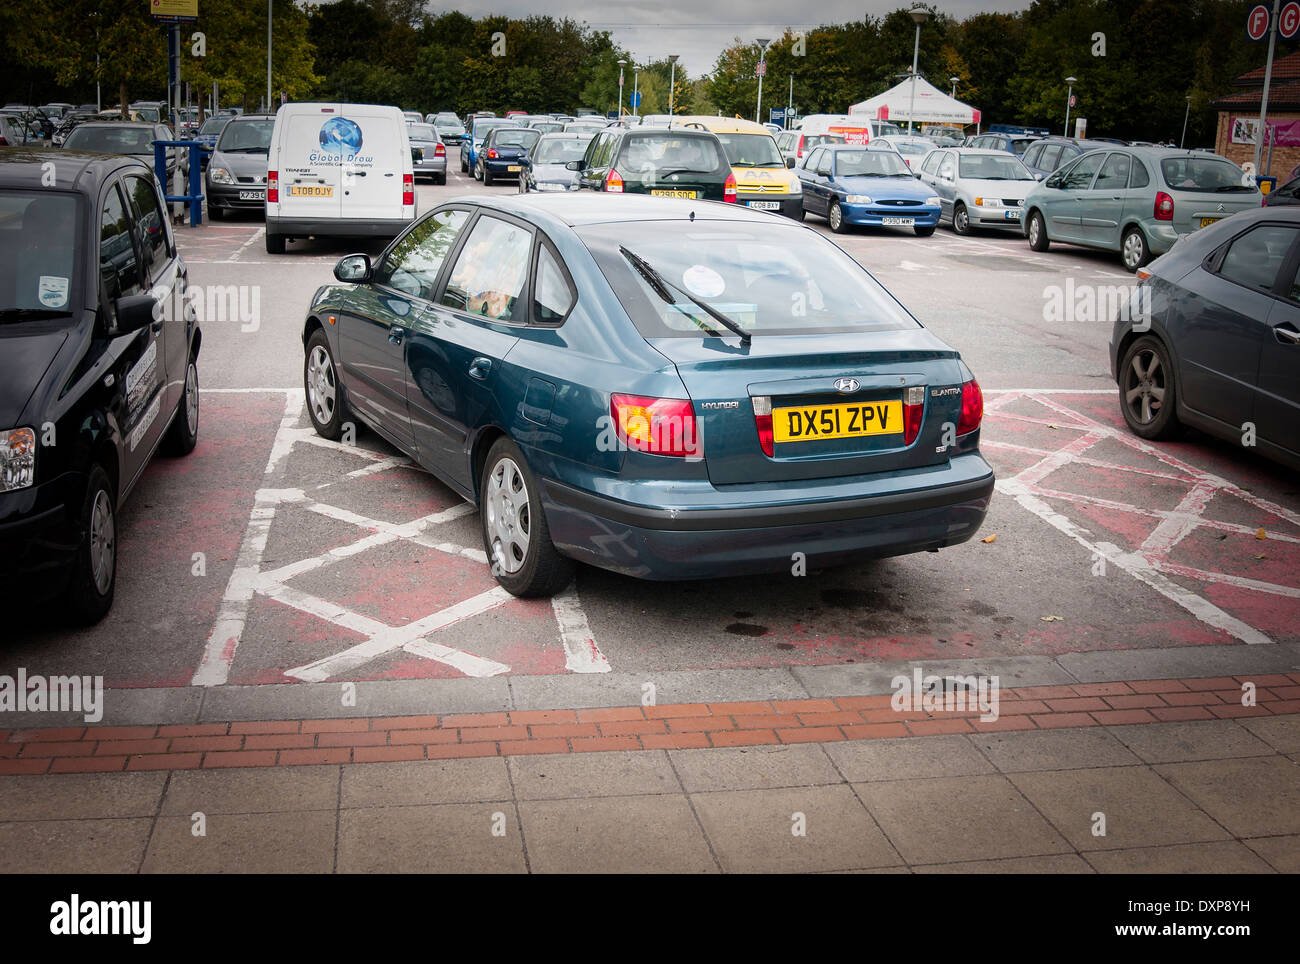 Badly parked car in disabled bay in supermarket car park - Stock Image